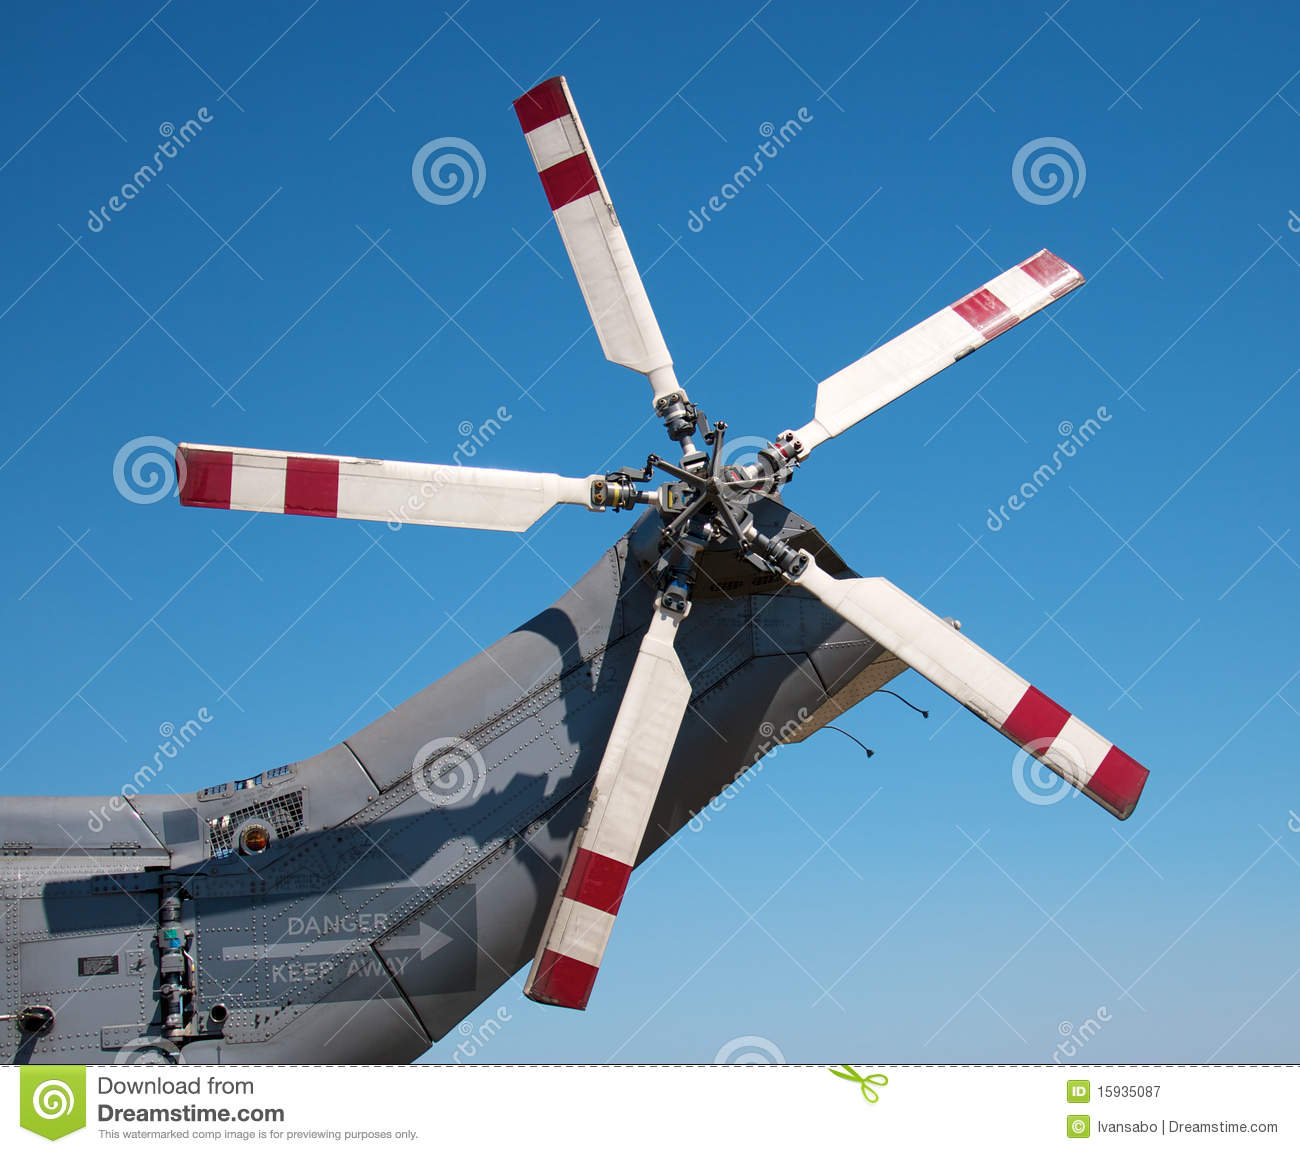 helicopter prices with Royalty Free Stock Photography Tail Rotors  Bat Helicopter Image15935087 on Stock Illustration Step Step Instructions How To Make Origami Paper Plane Illustration Image69548600 also Cheap Flights To Kansas City d6058374 furthermore Royalty Free Stock Photography Indian Army Helicopter Image22838567 besides Porsche 911 Gt3 furthermore Images.